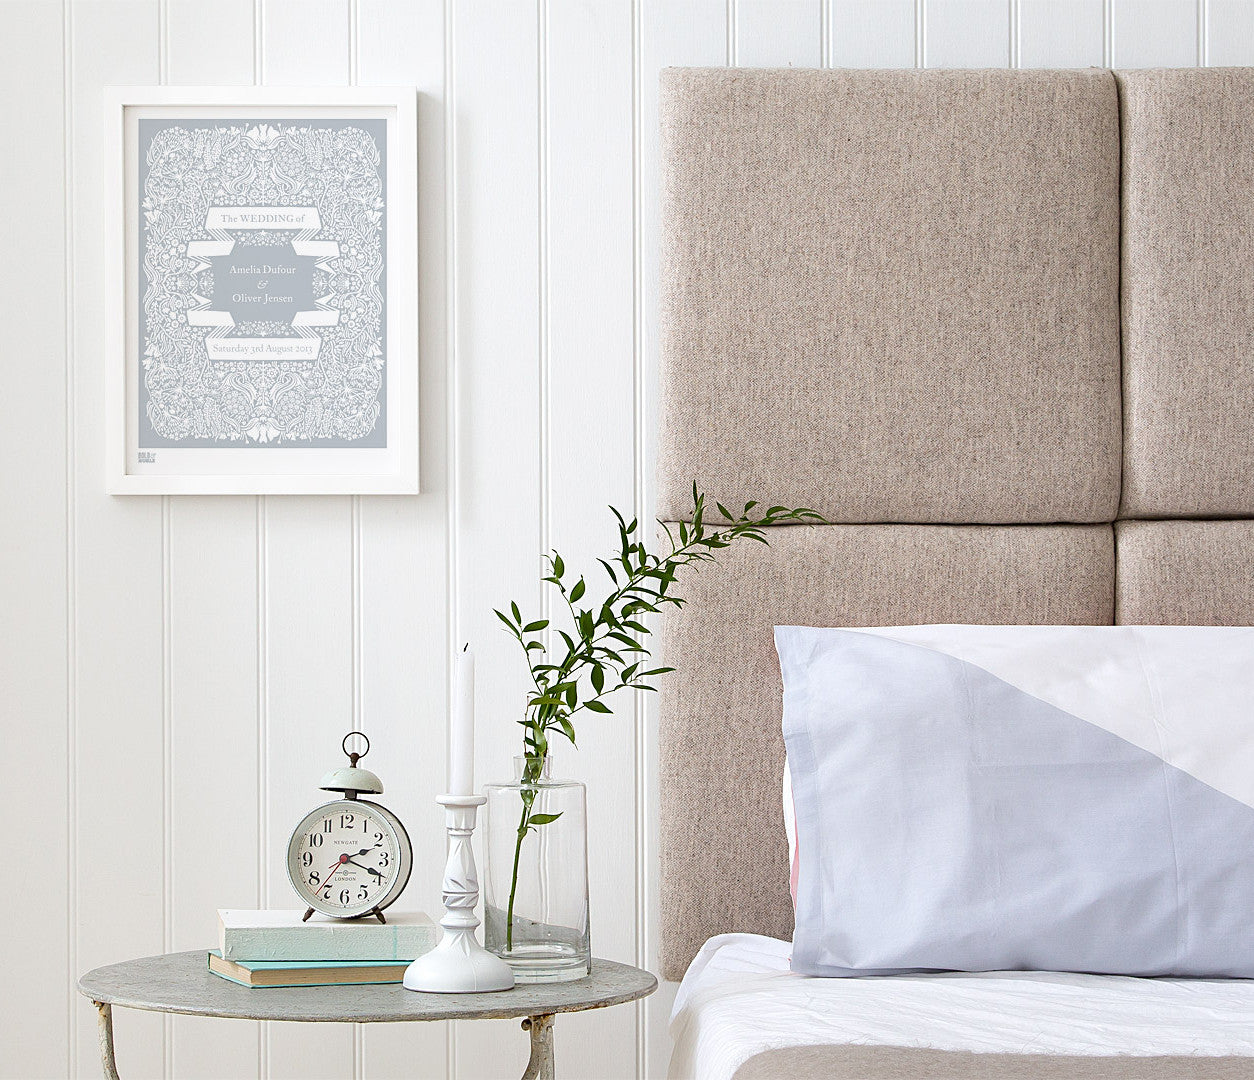 Wall Art where to start: Personalised Wedding Print, Light Grey, Hand Printed in the UK